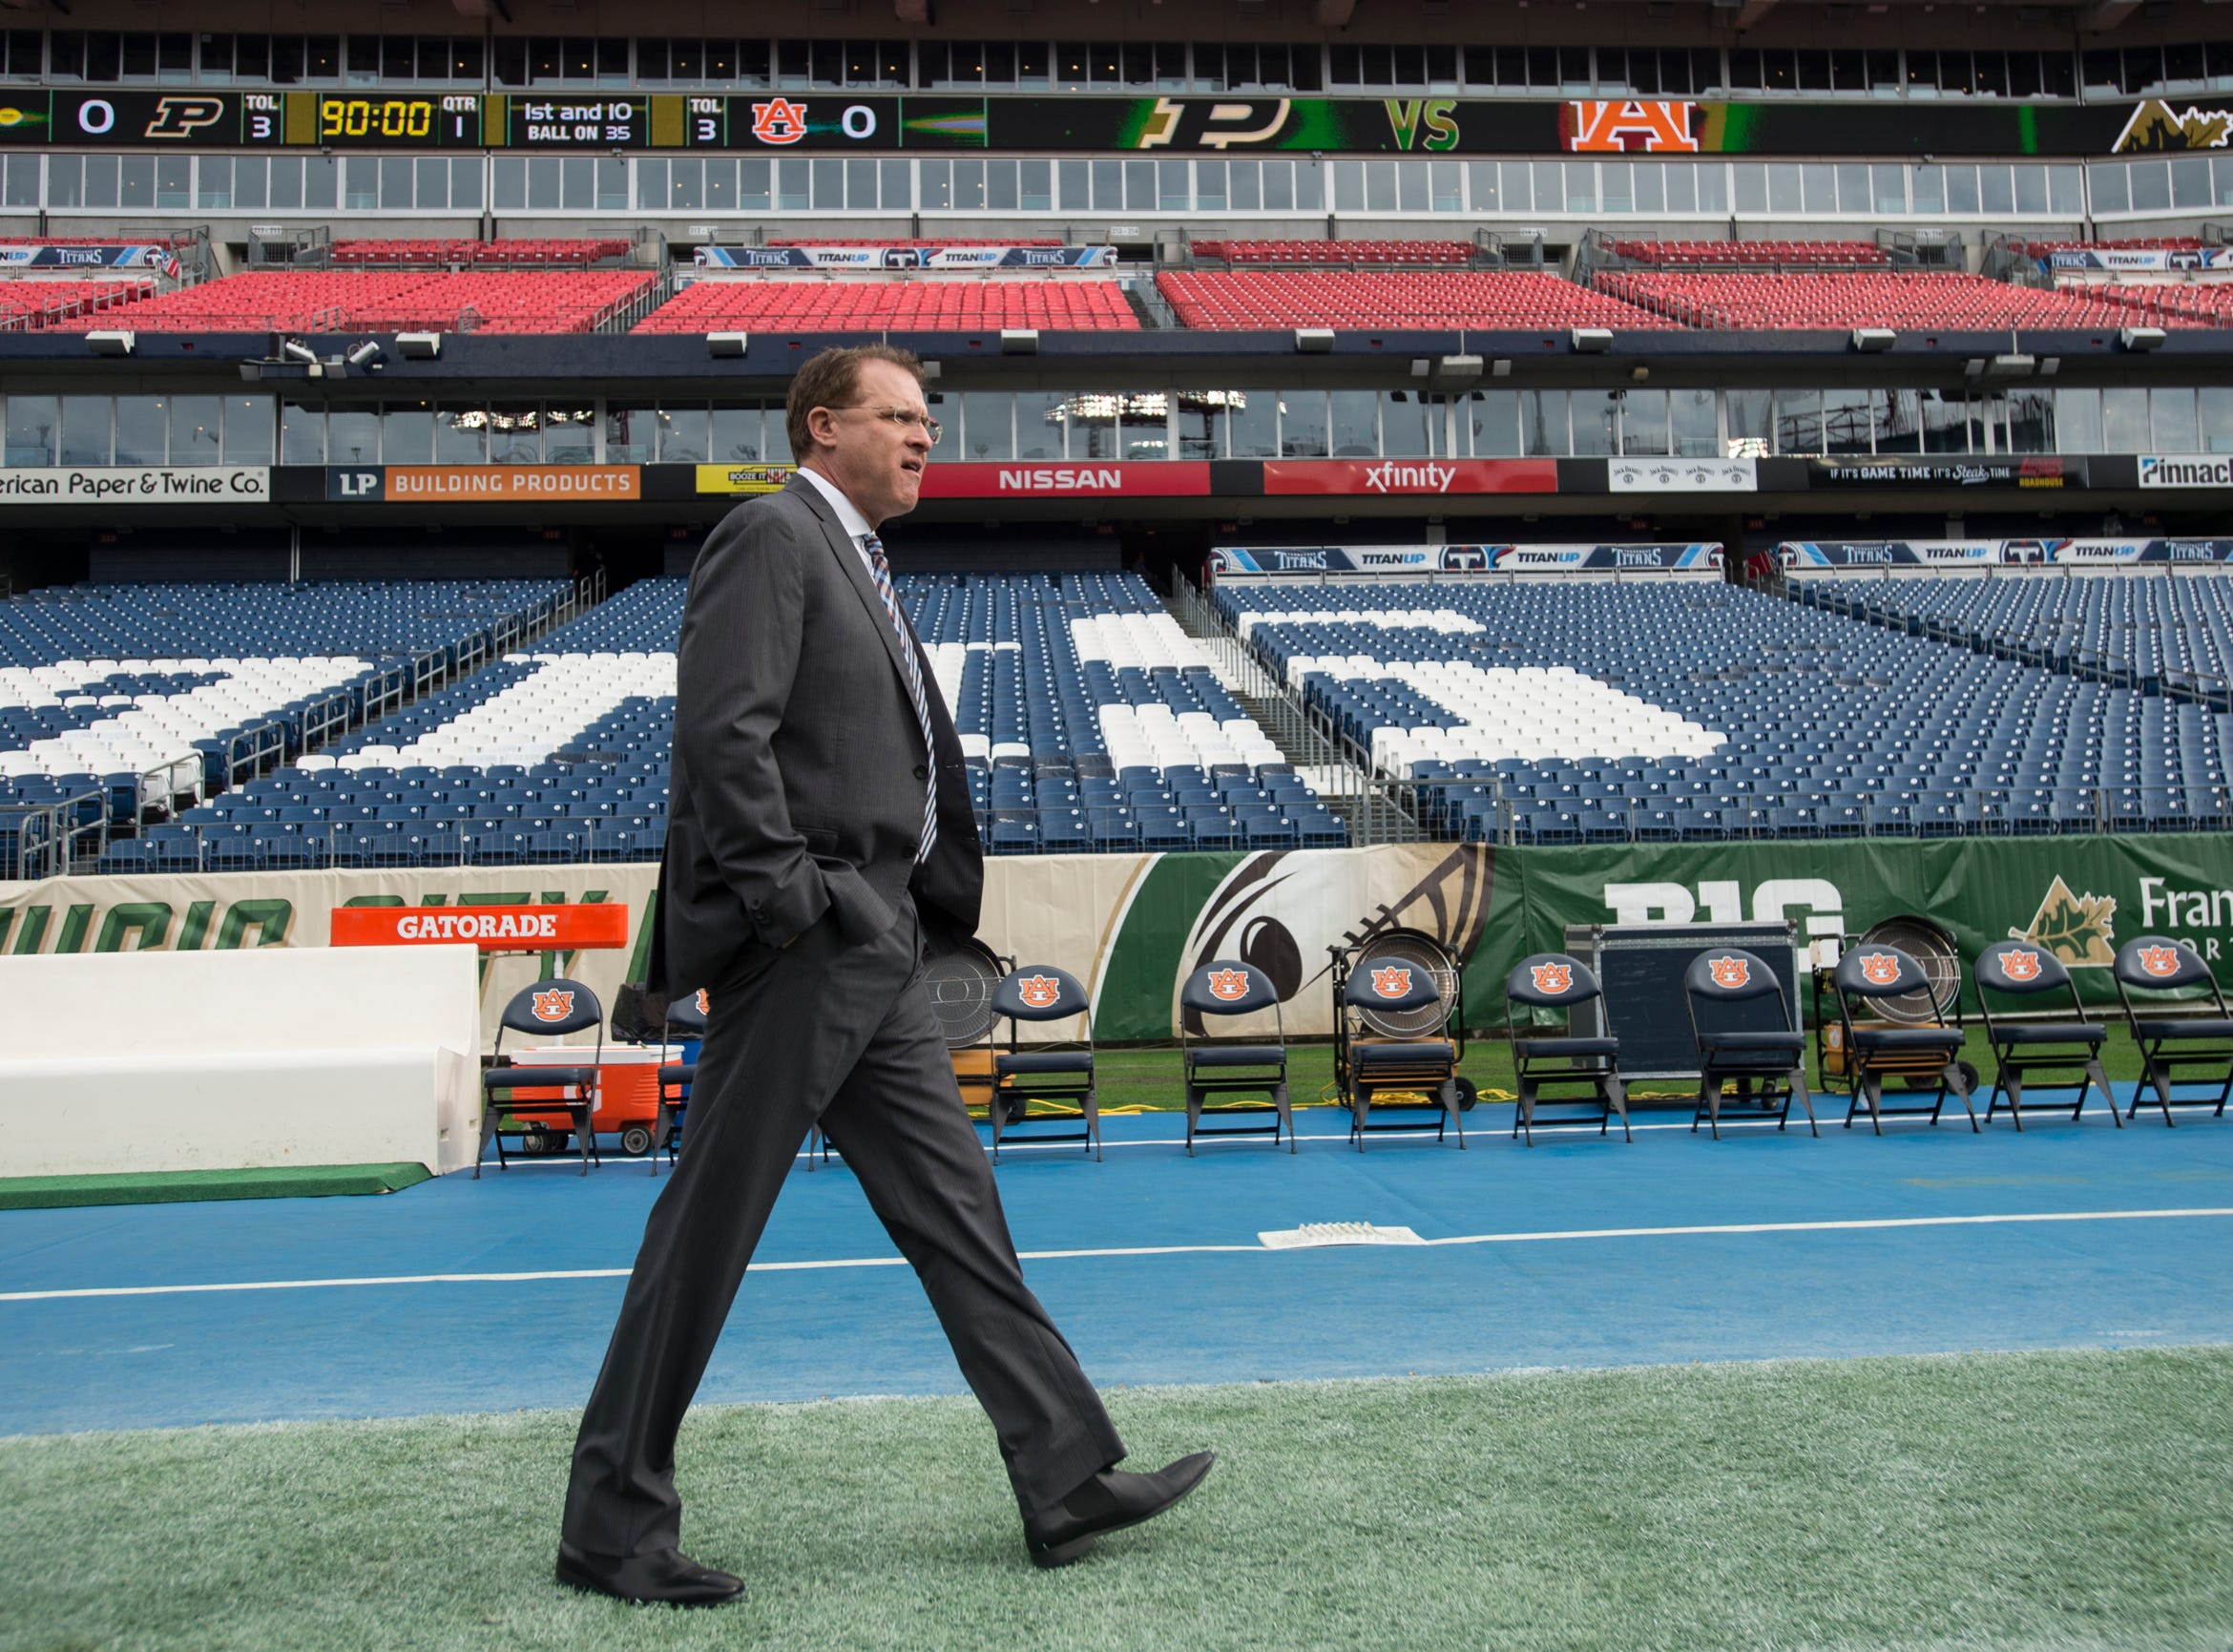 Auburn head coach Gus Malzahn walks the field before taking on Purdue in the Music City Bowl at Nissan Stadium in Nashville, Tenn., on Friday, Dec. 28, 2018.